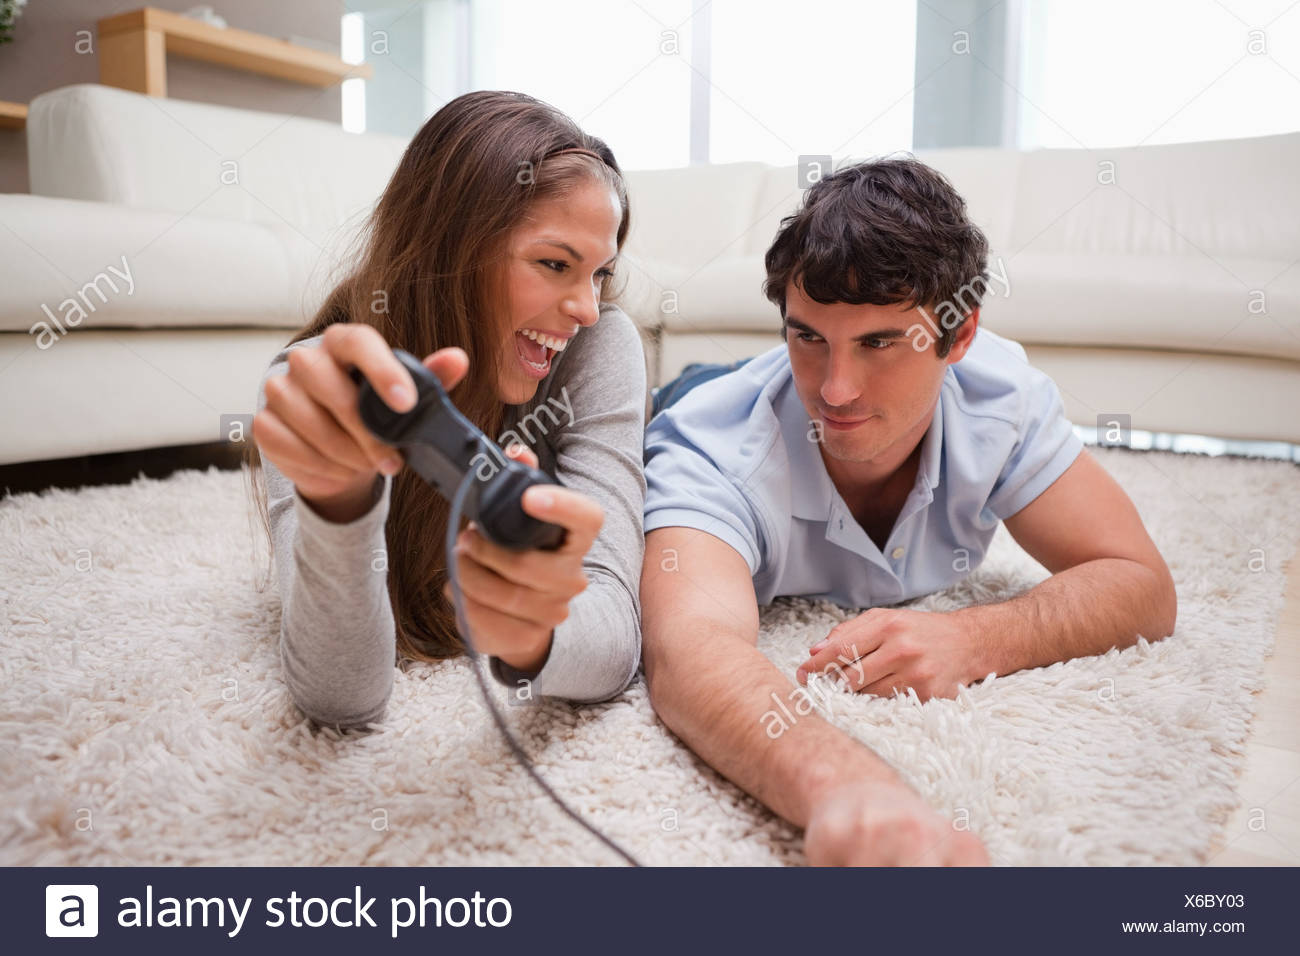 Woman just defeated her boyfriend at a video game - Stock Image